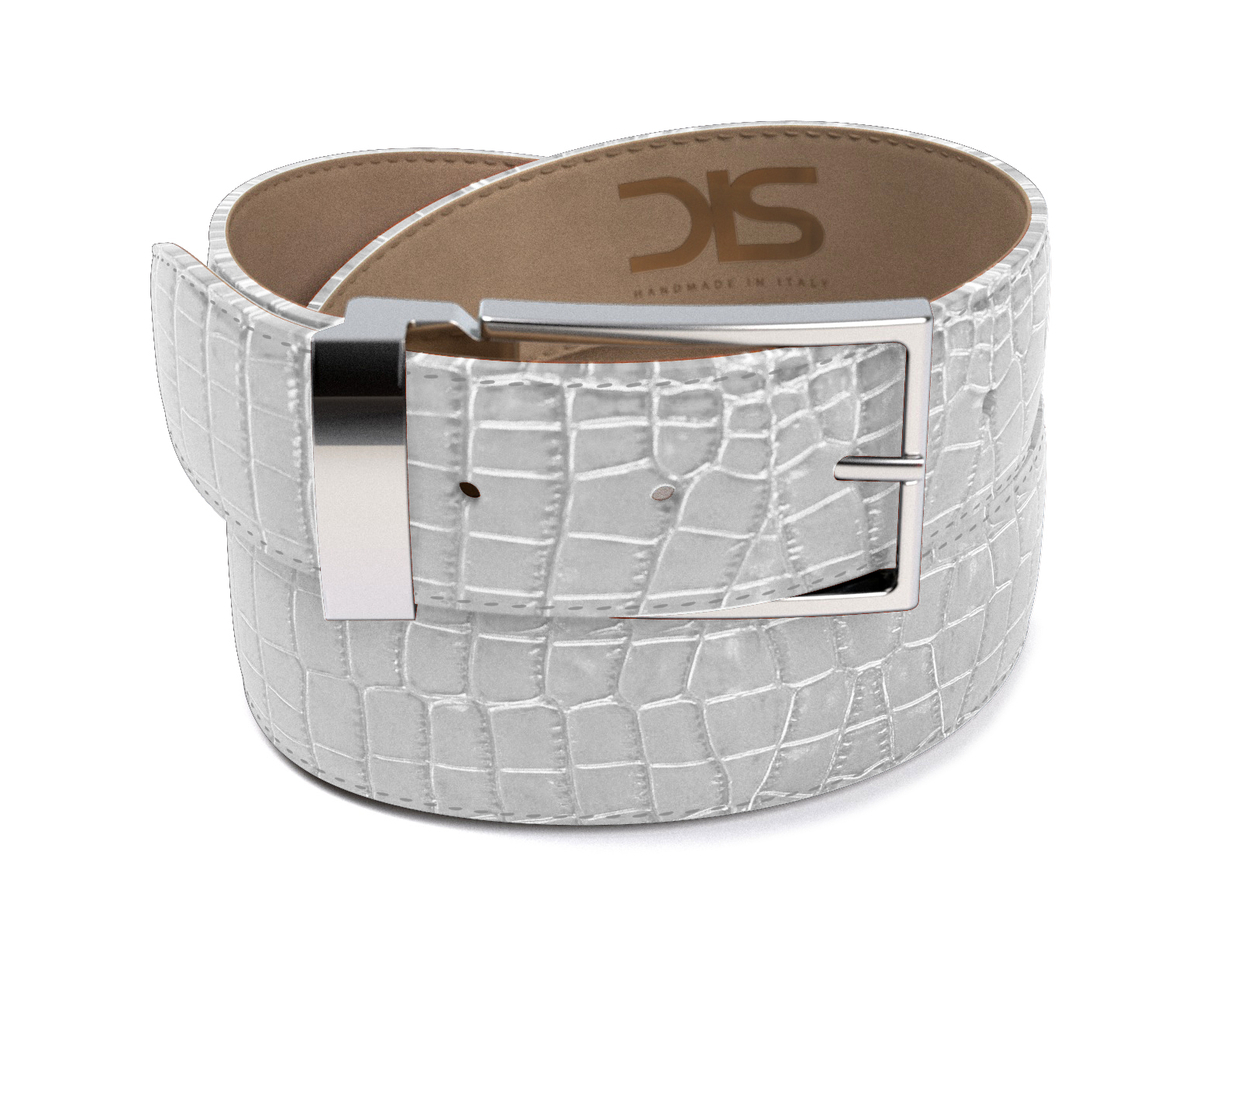 White crocodile leather belt with silver buckle